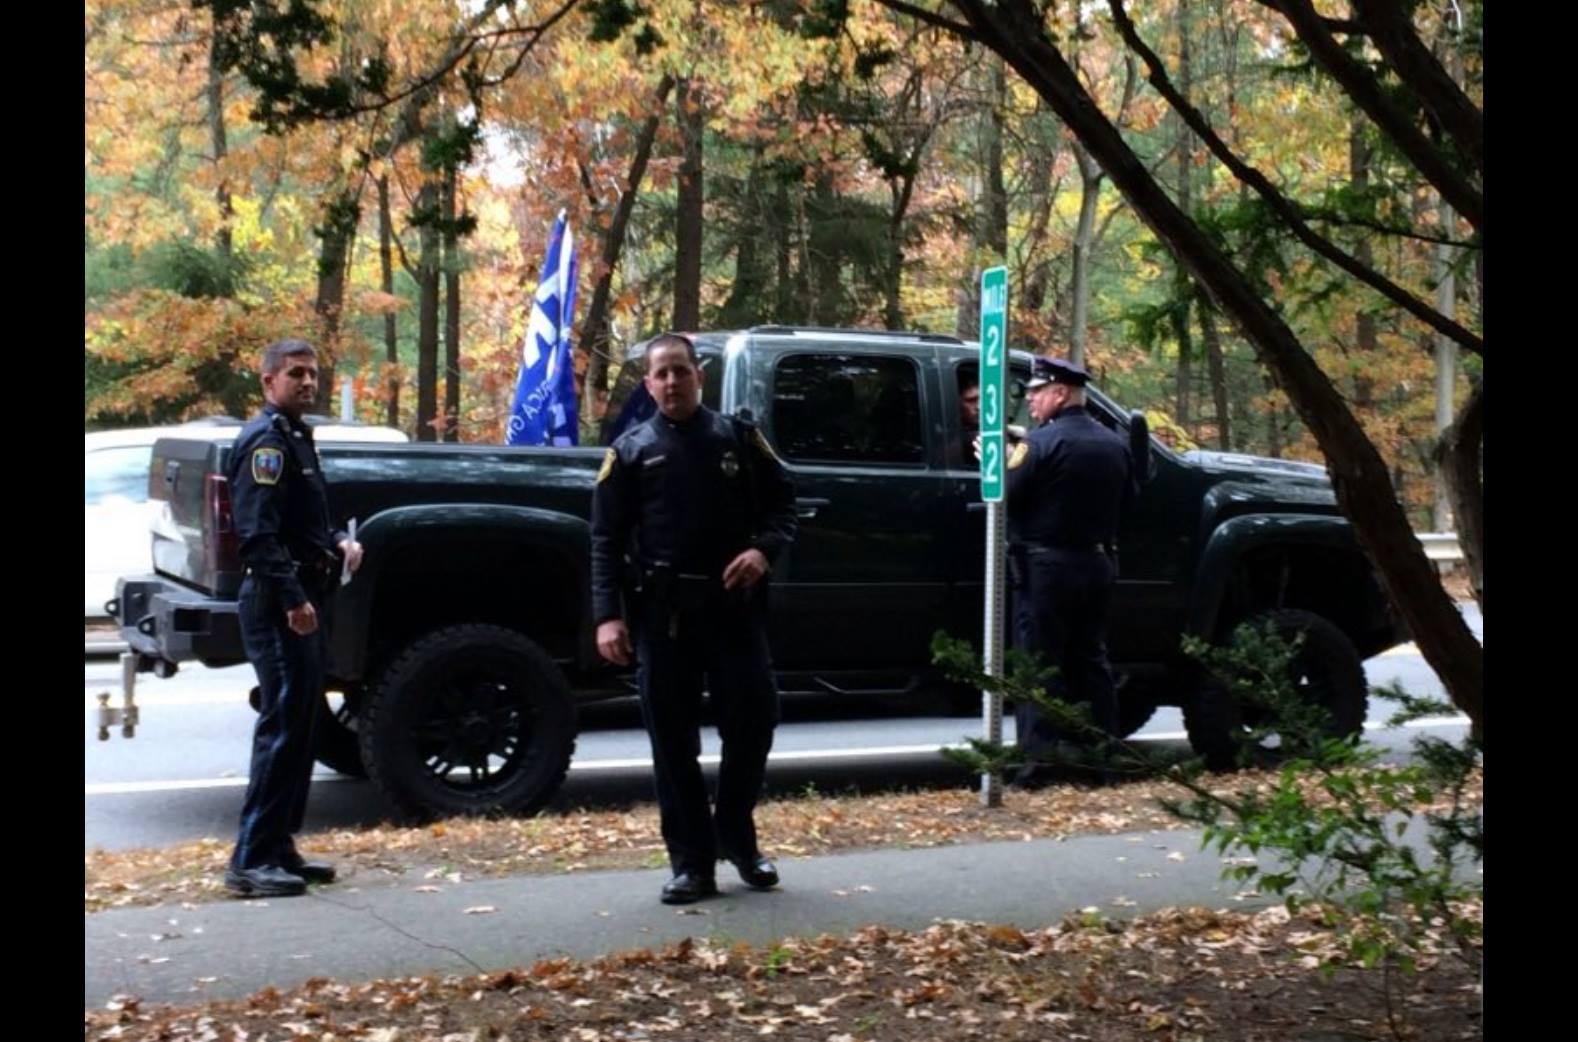 Town of Wellesley police next to the pickup truck driven through Wellesley College by two Babson students.